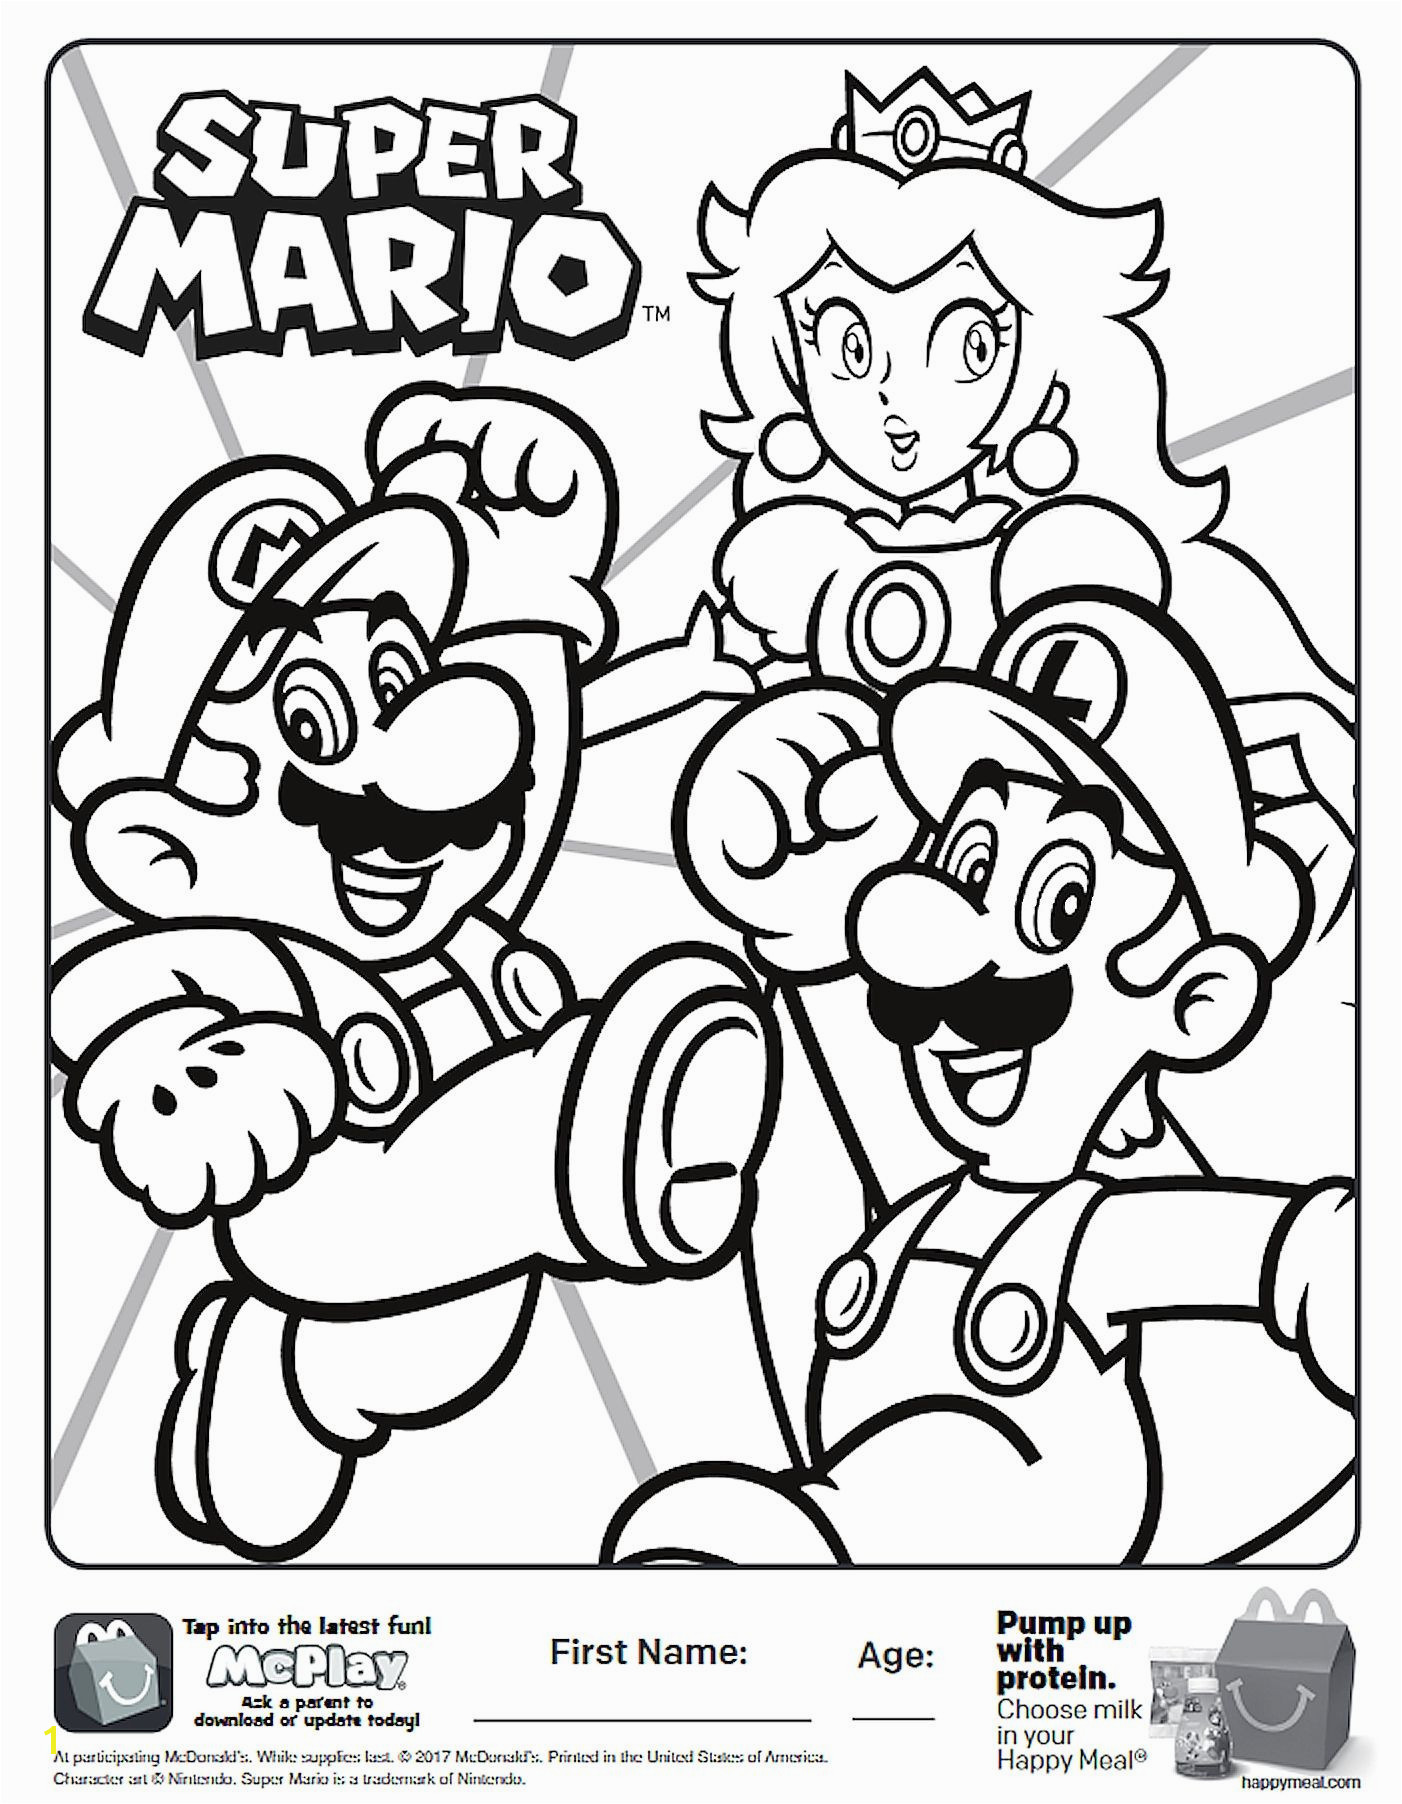 Here is the Happy Meal Super Mario Coloring Page the picture